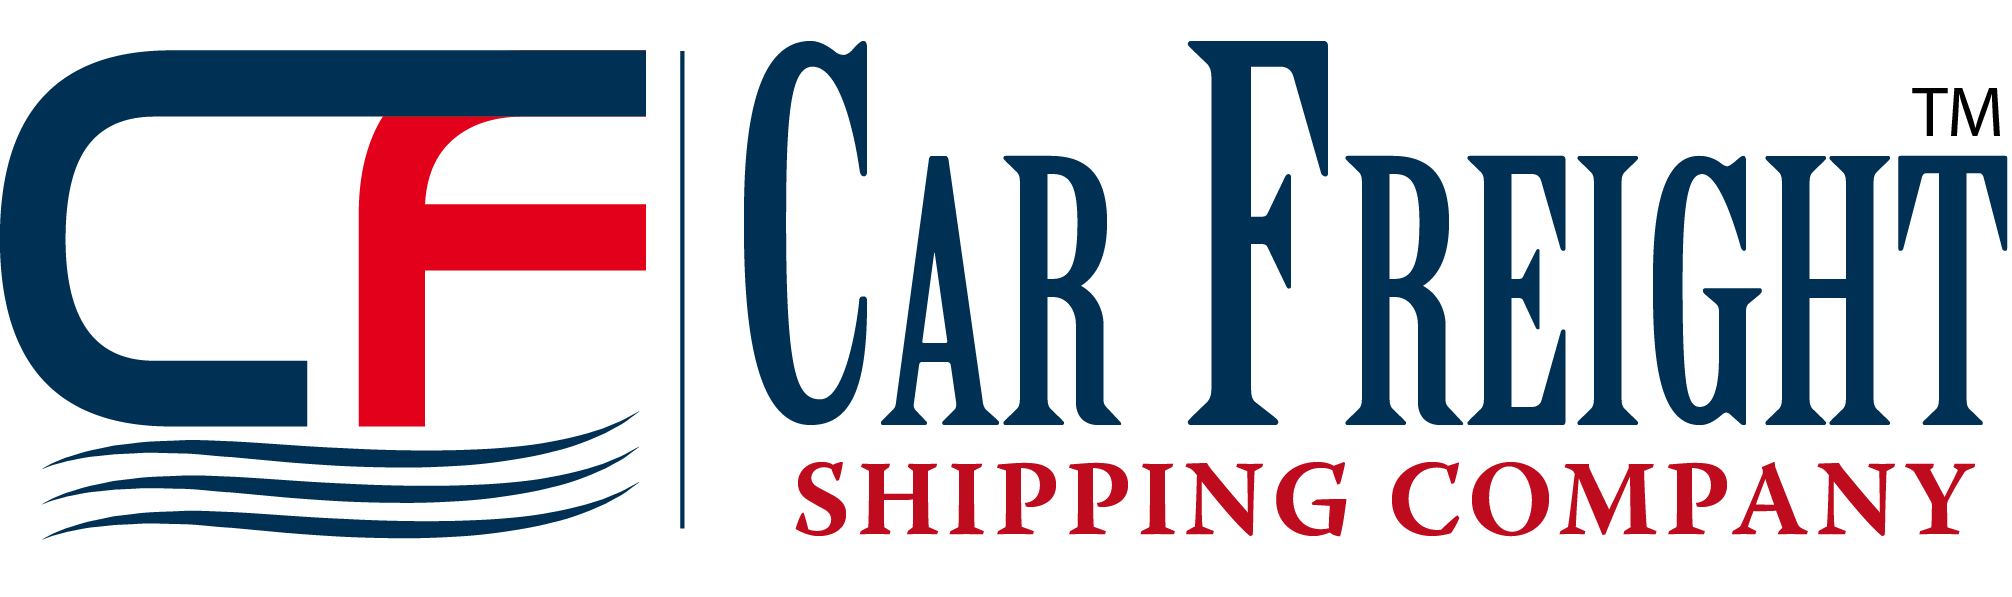 Logo - Car Freight, Inc.